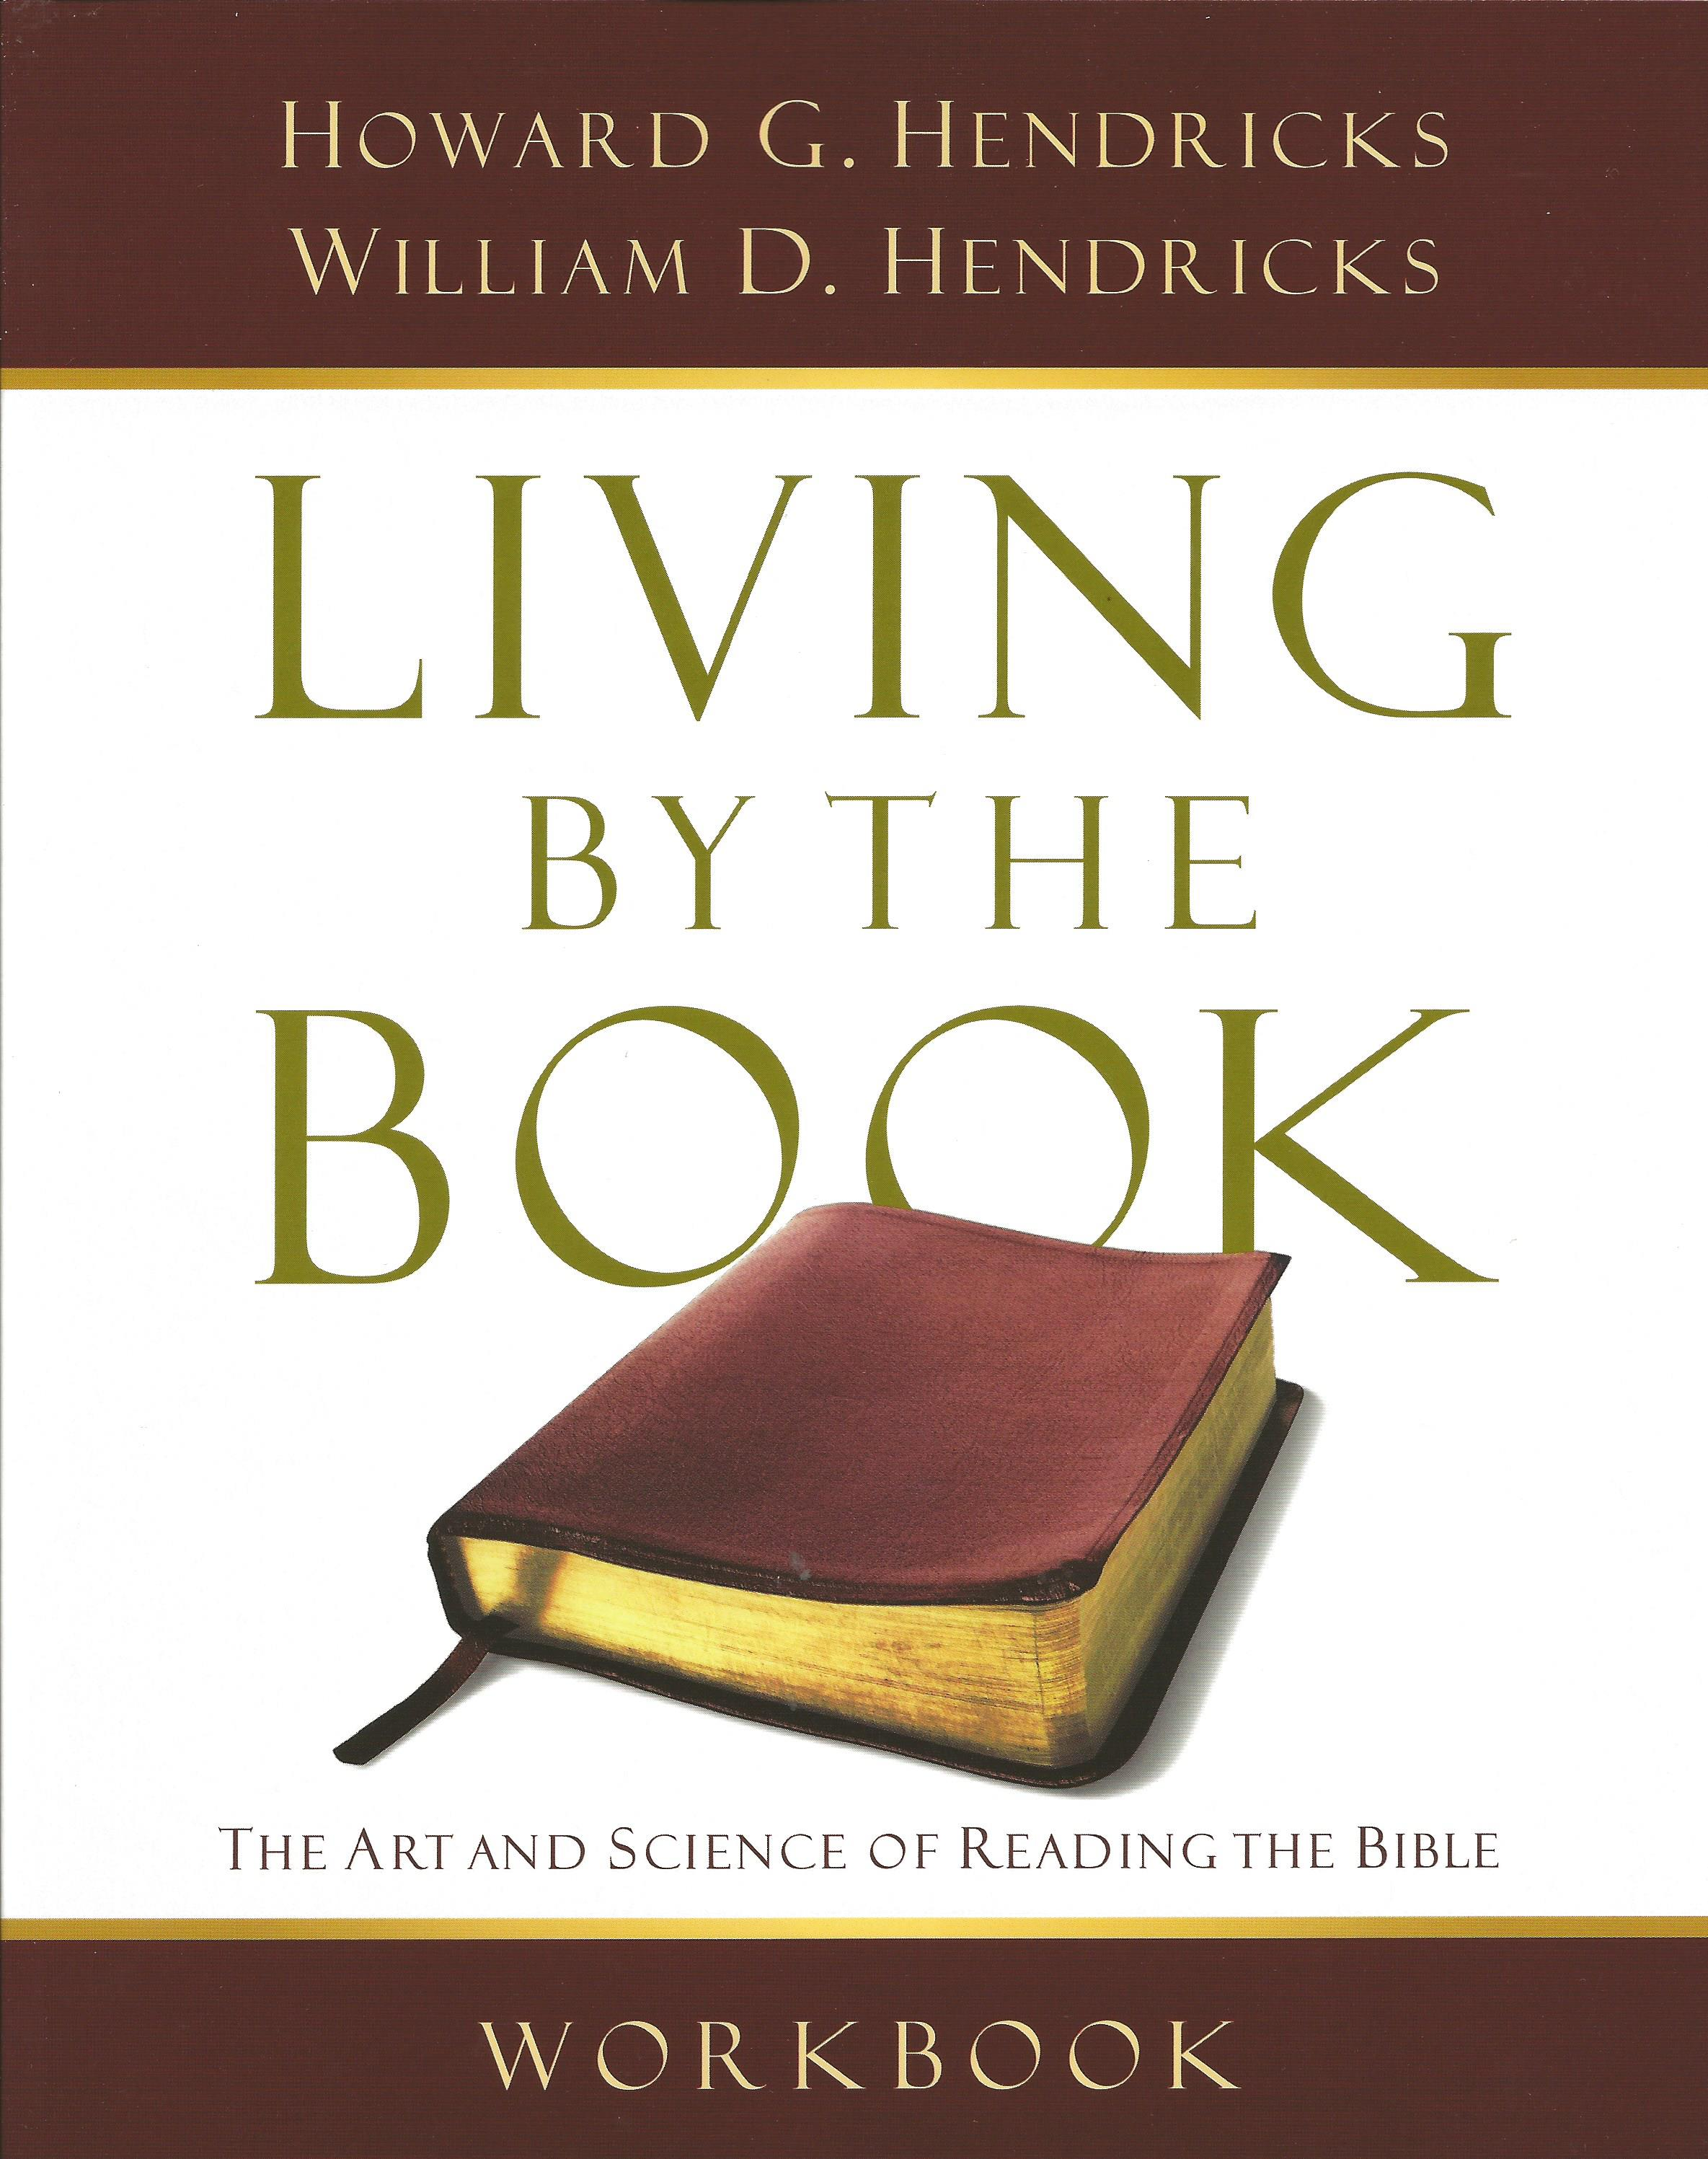 LIVING BY THE BOOK WORKBOOK